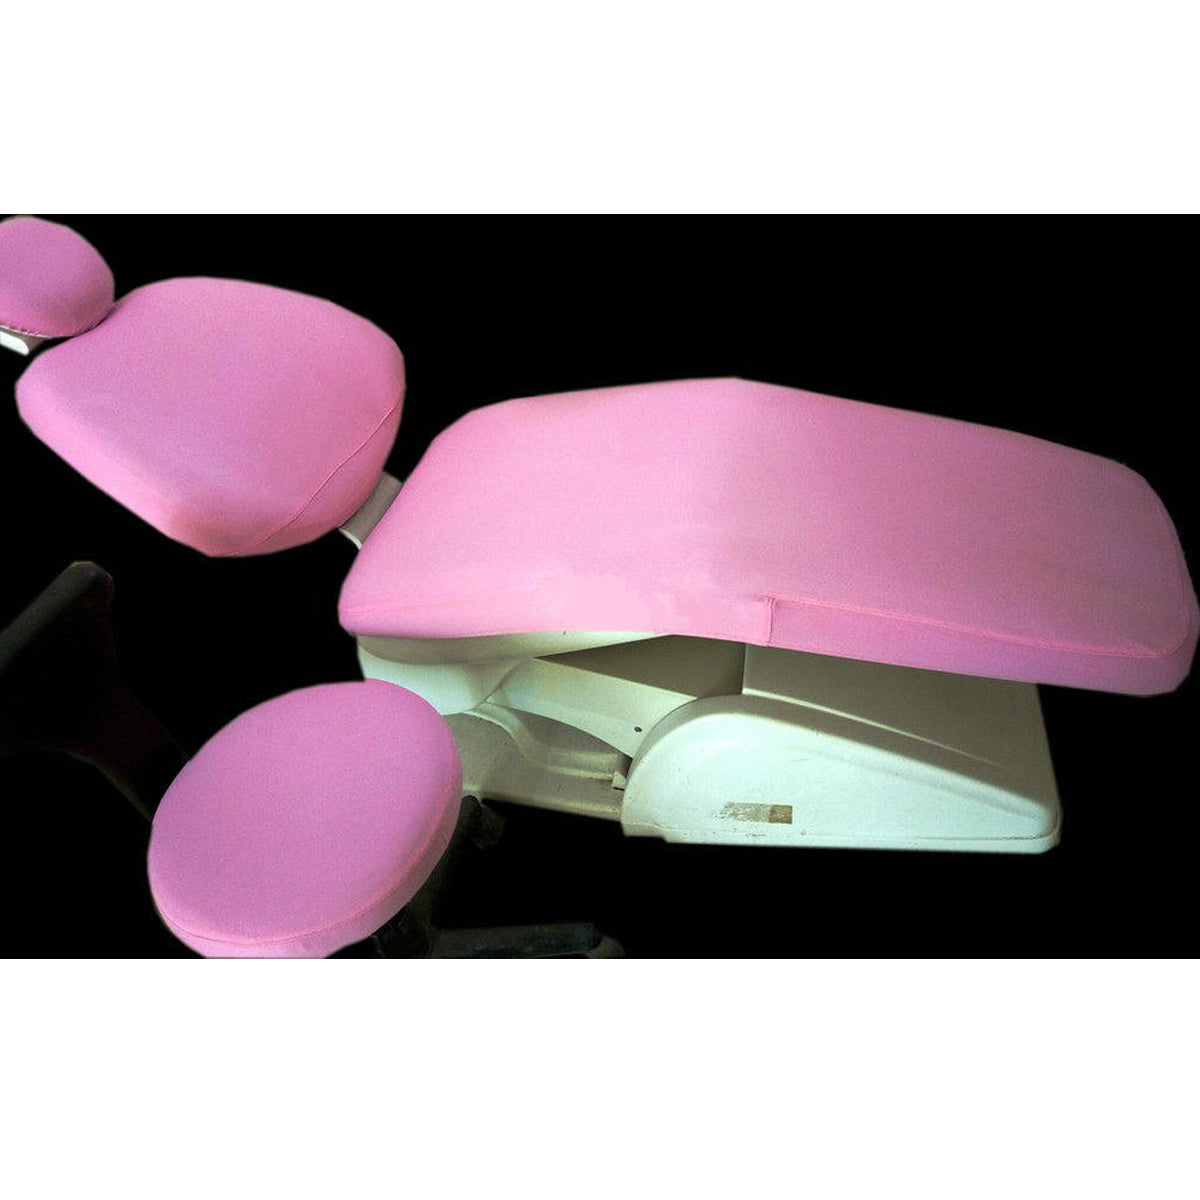 1 Set Washable Elastic Dental Unit Cover Cloth Dentist Chair Headrest Protector Sleeves Tools